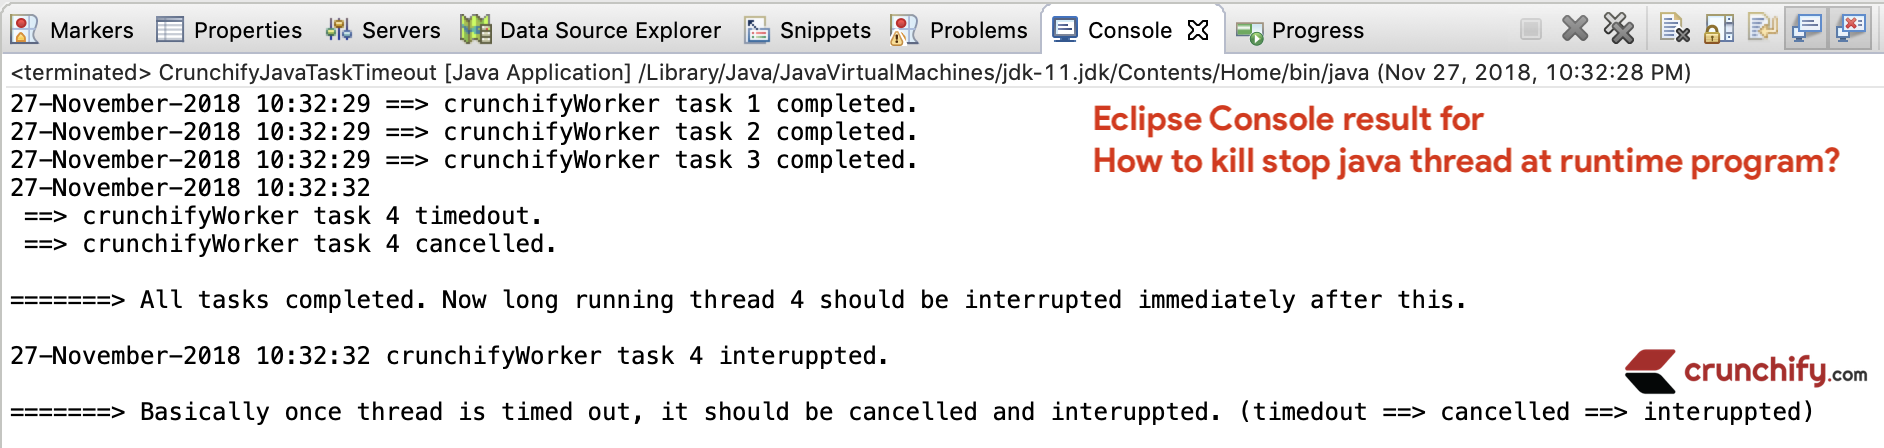 How to kill stop java thread at runtime